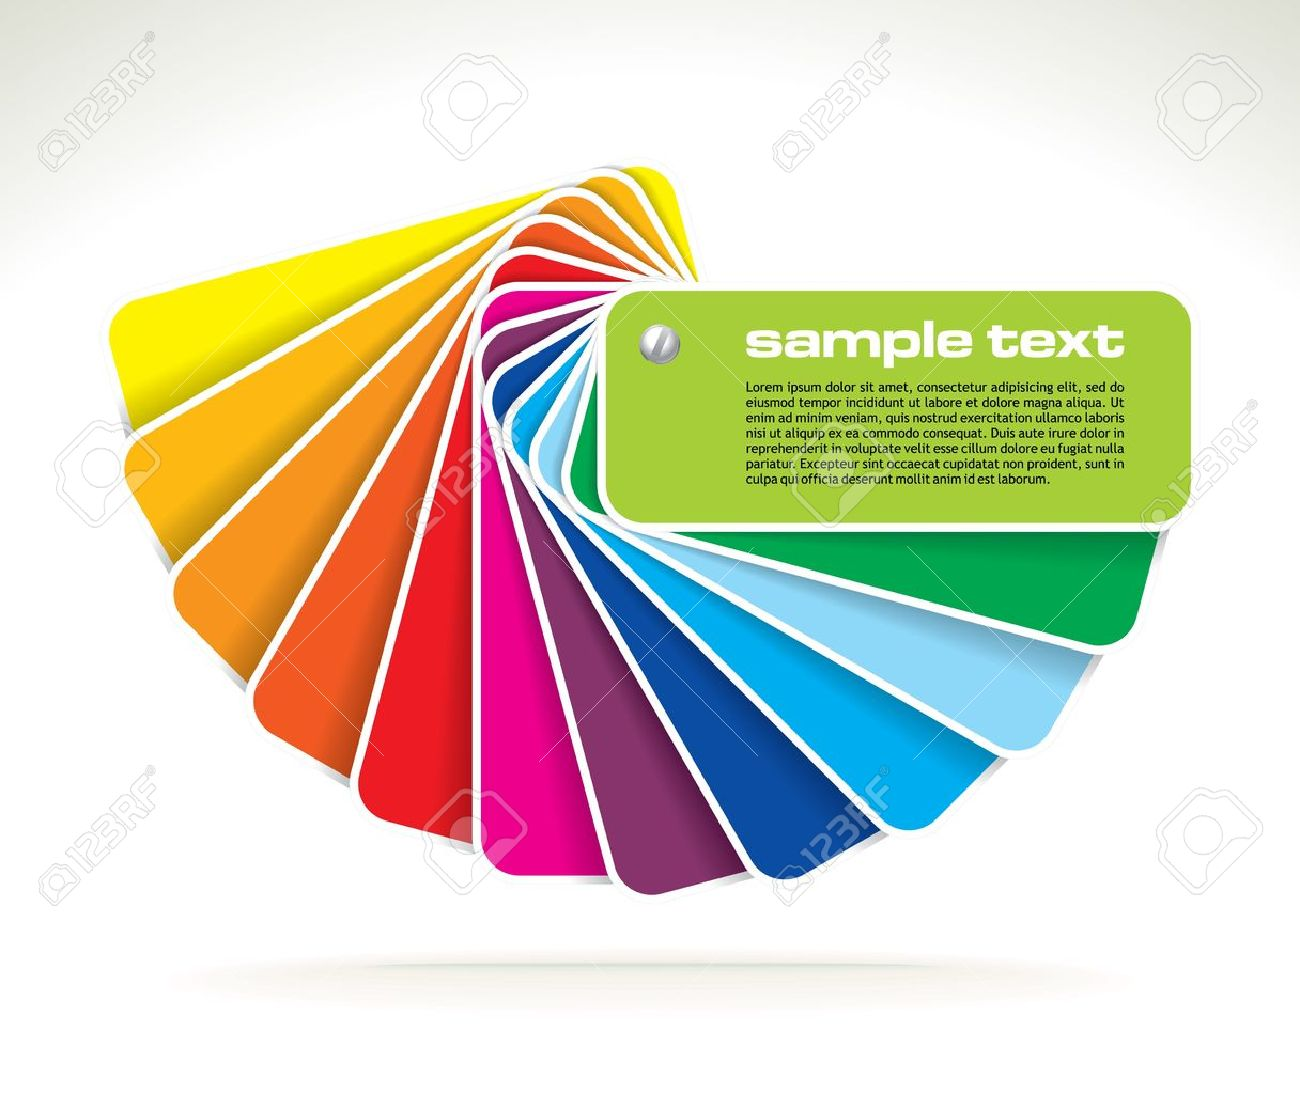 Colour Guide With Sample Text Vector Illustration Royalty Free – Sample Cmyk Color Chart